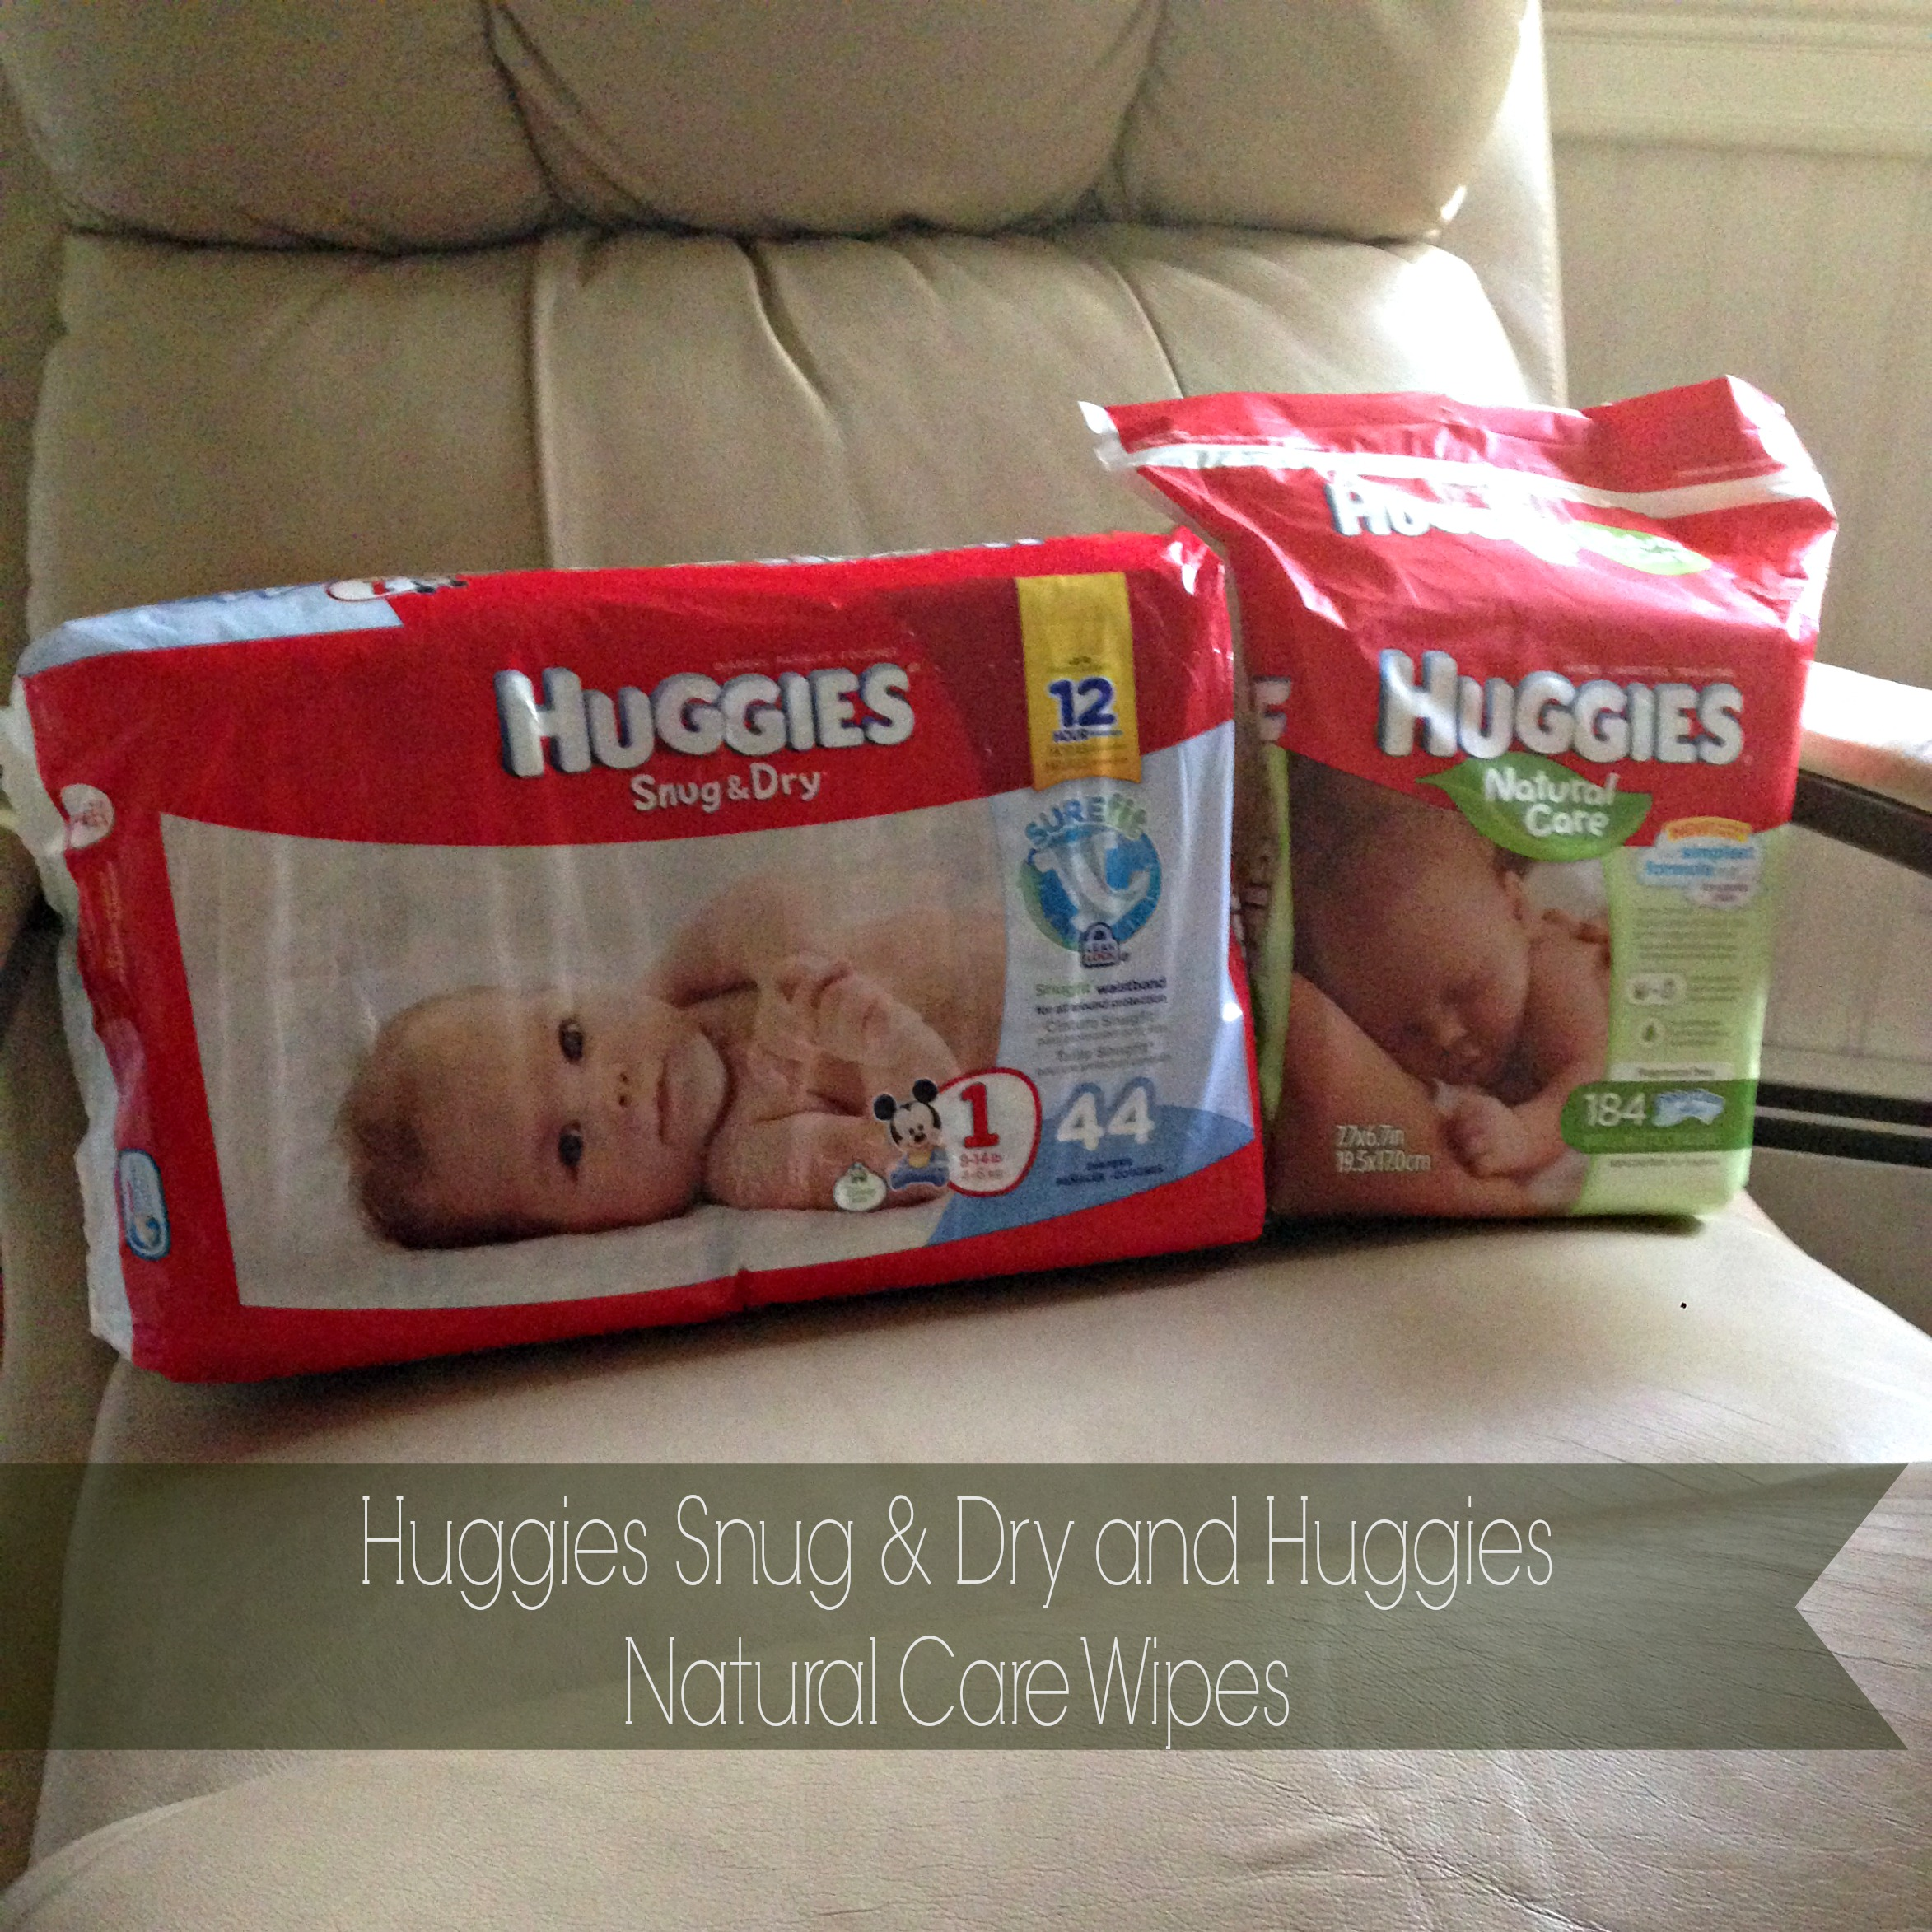 Huggies Snug and Dry!